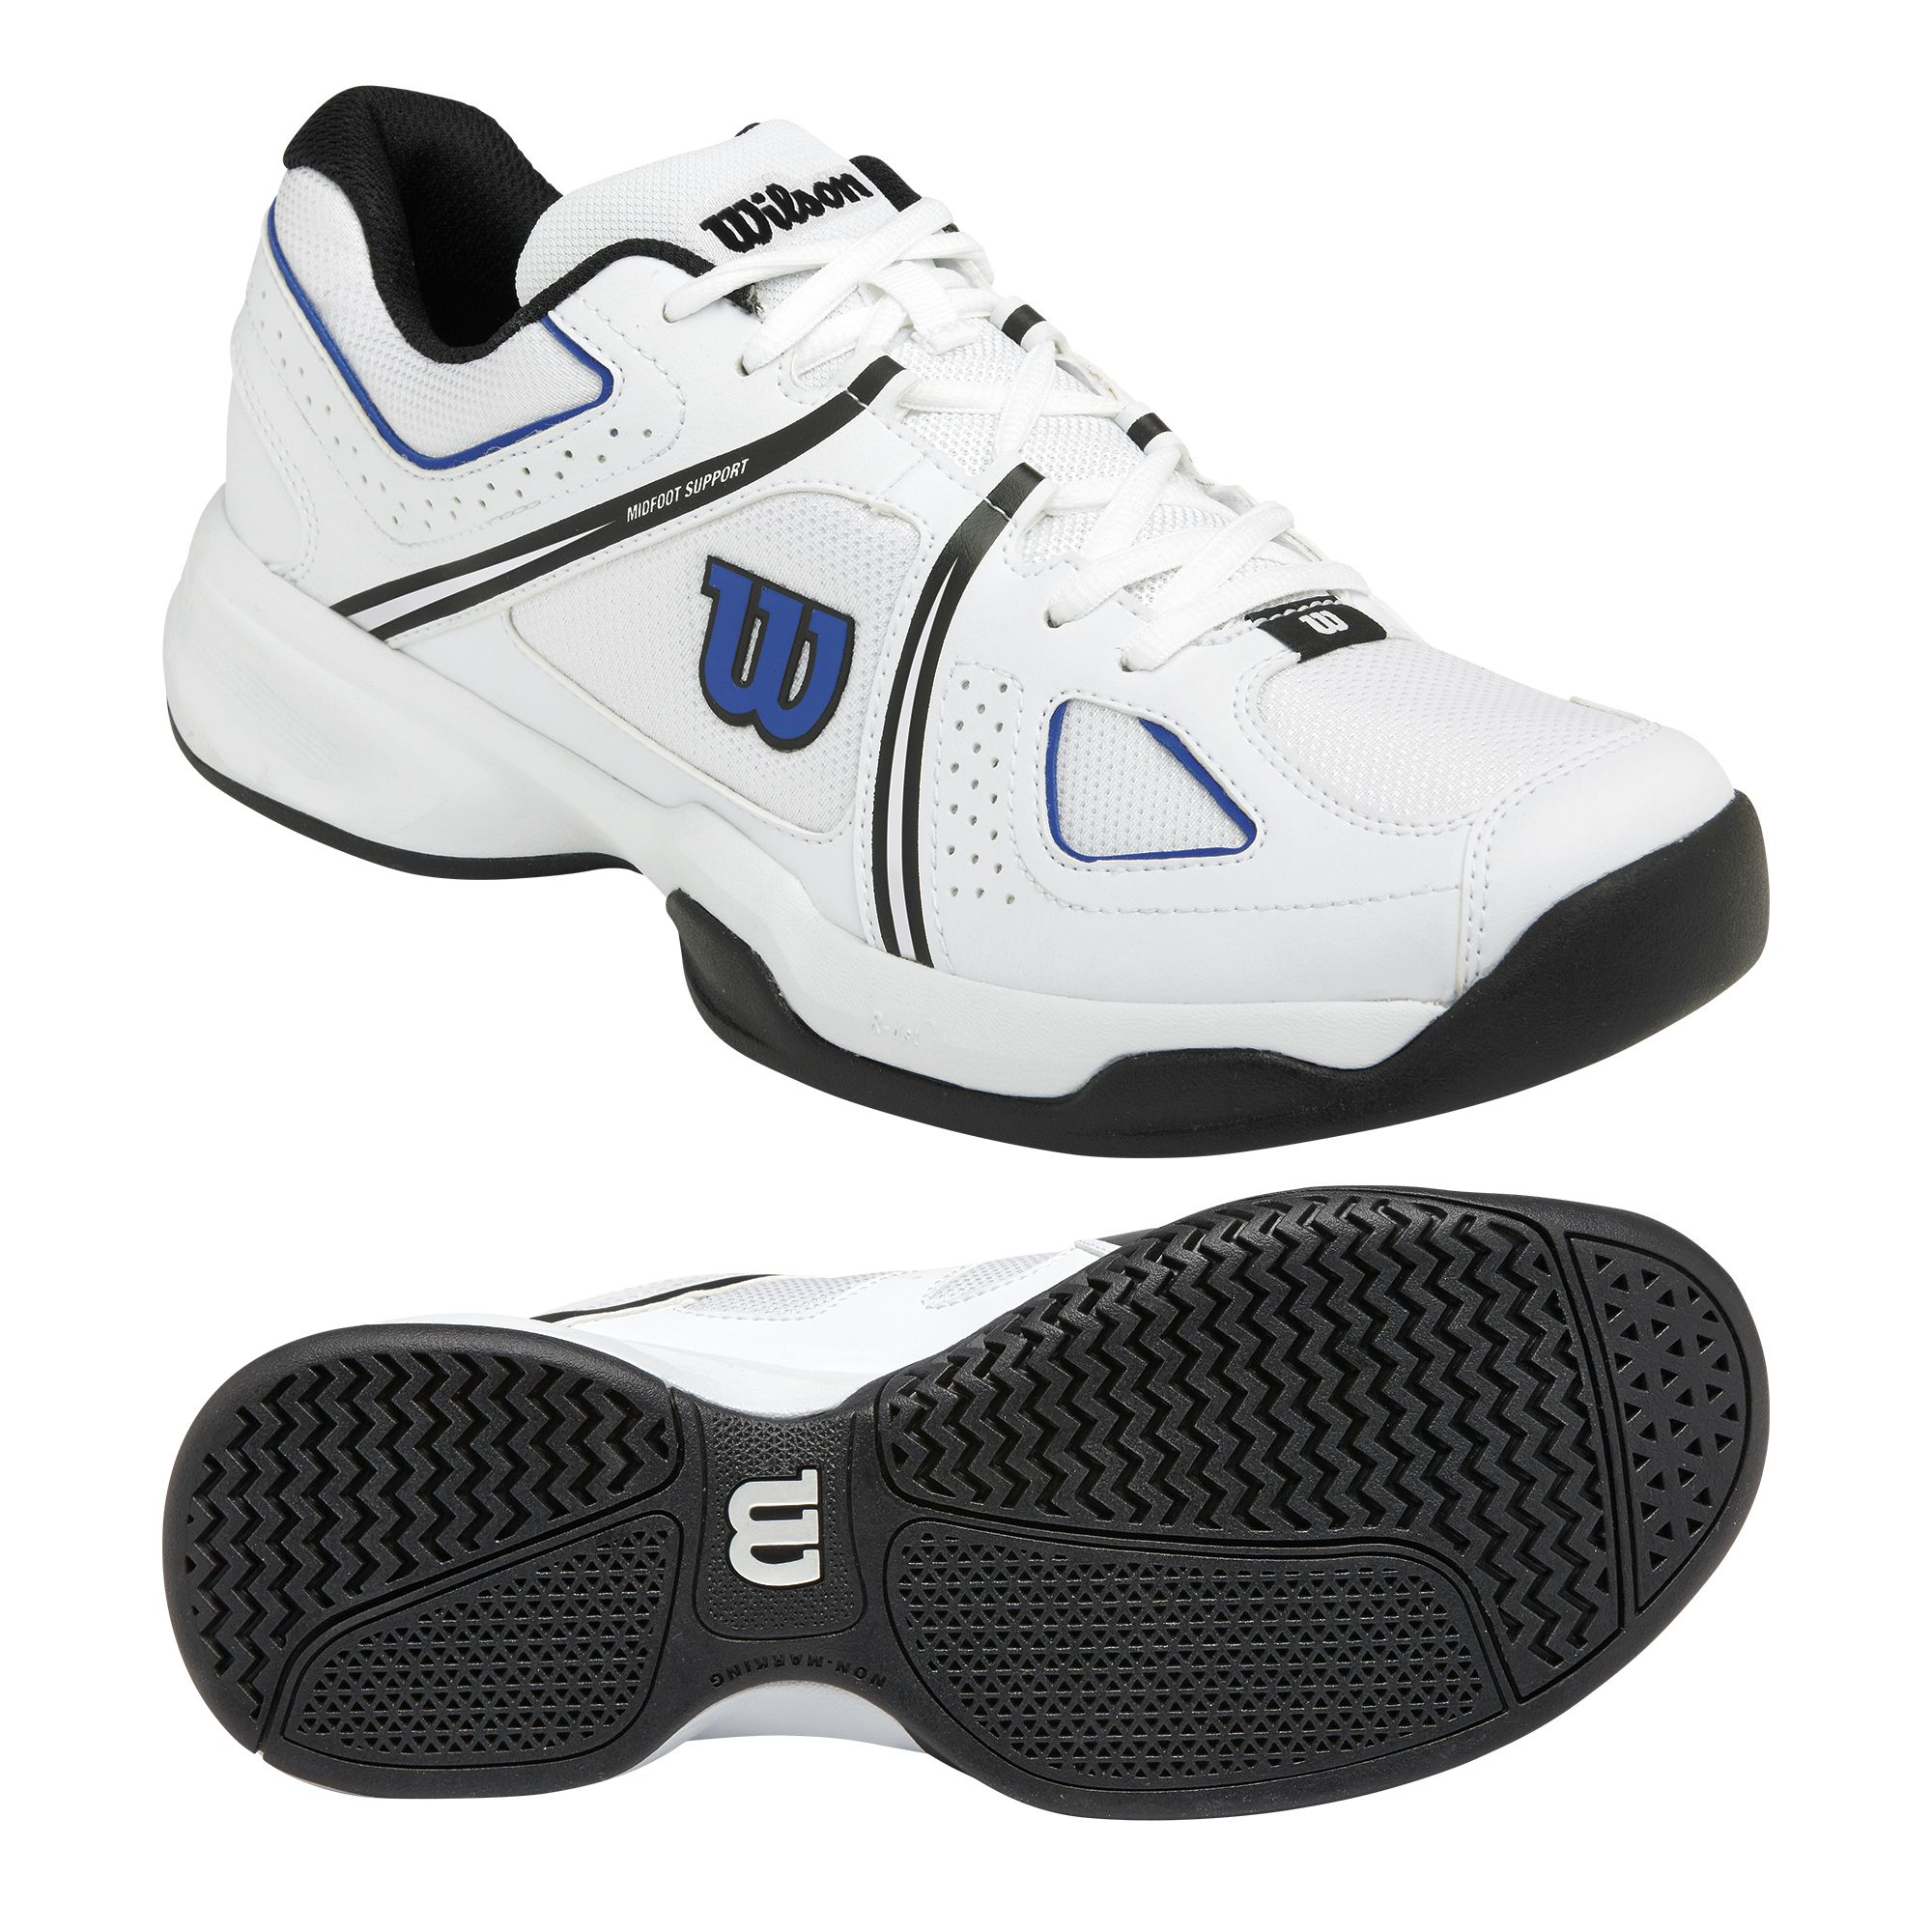 wilson nvision envy mens tennis shoes ss15 sweatband